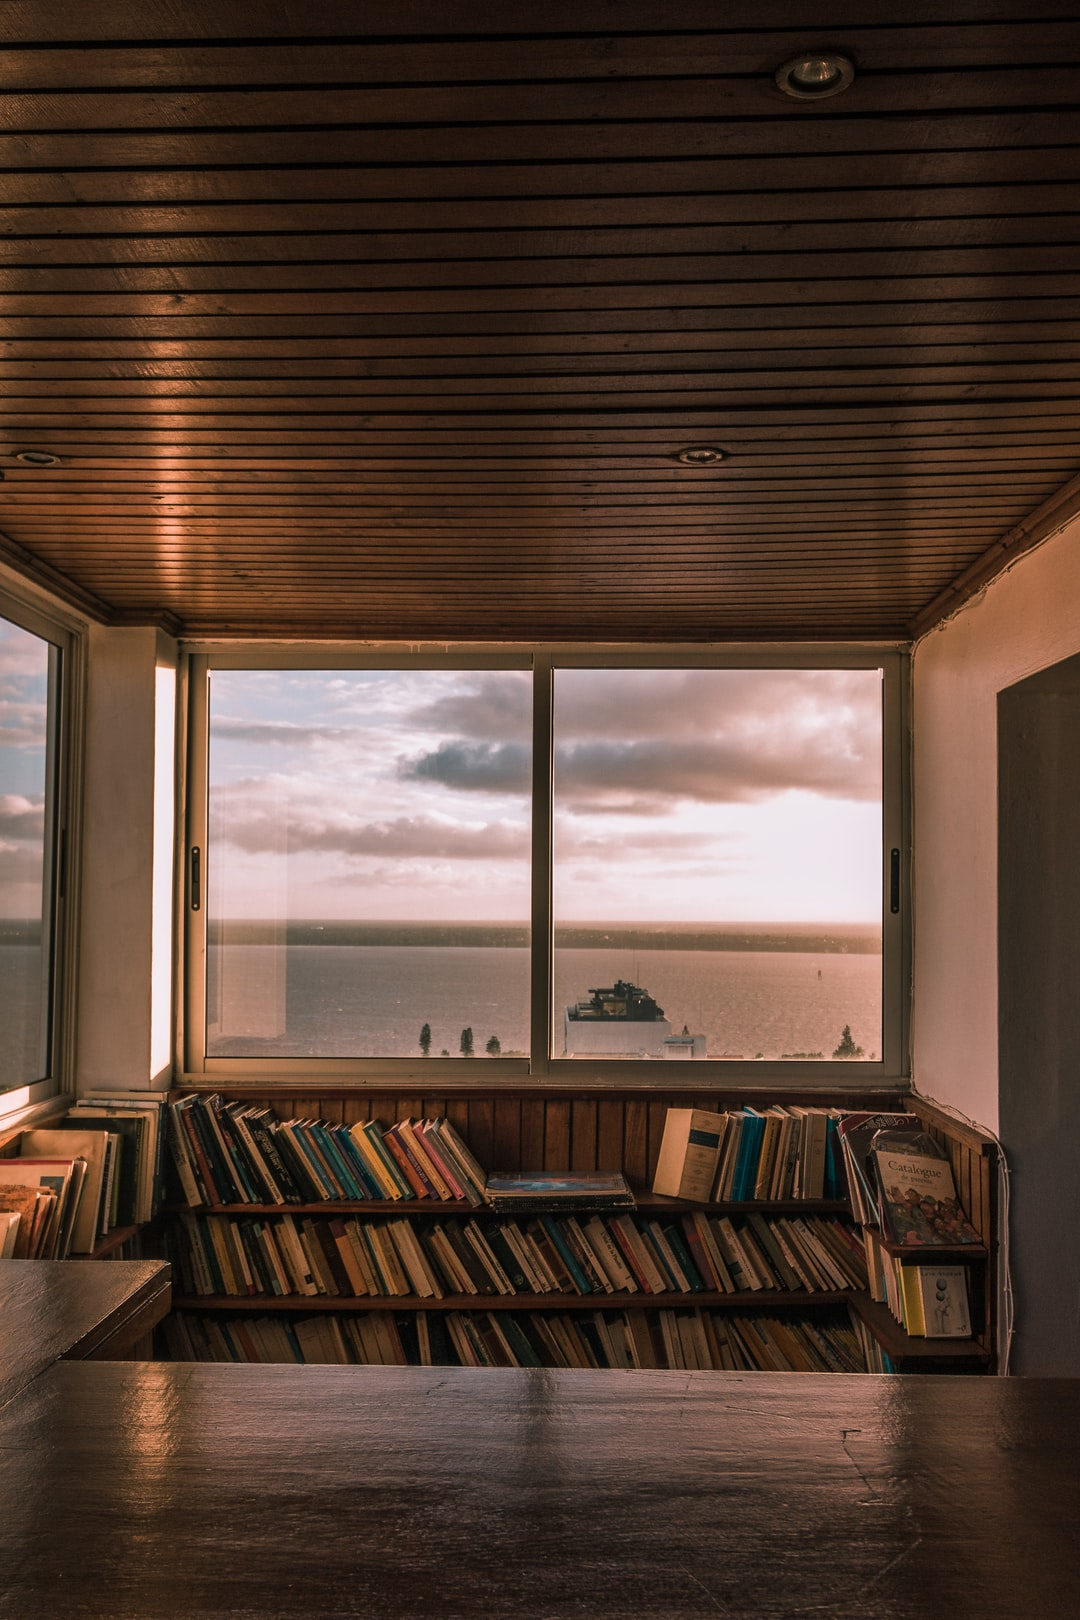 Amazing sunset over library and bookshelf with sea view in Maputo, Mozambique